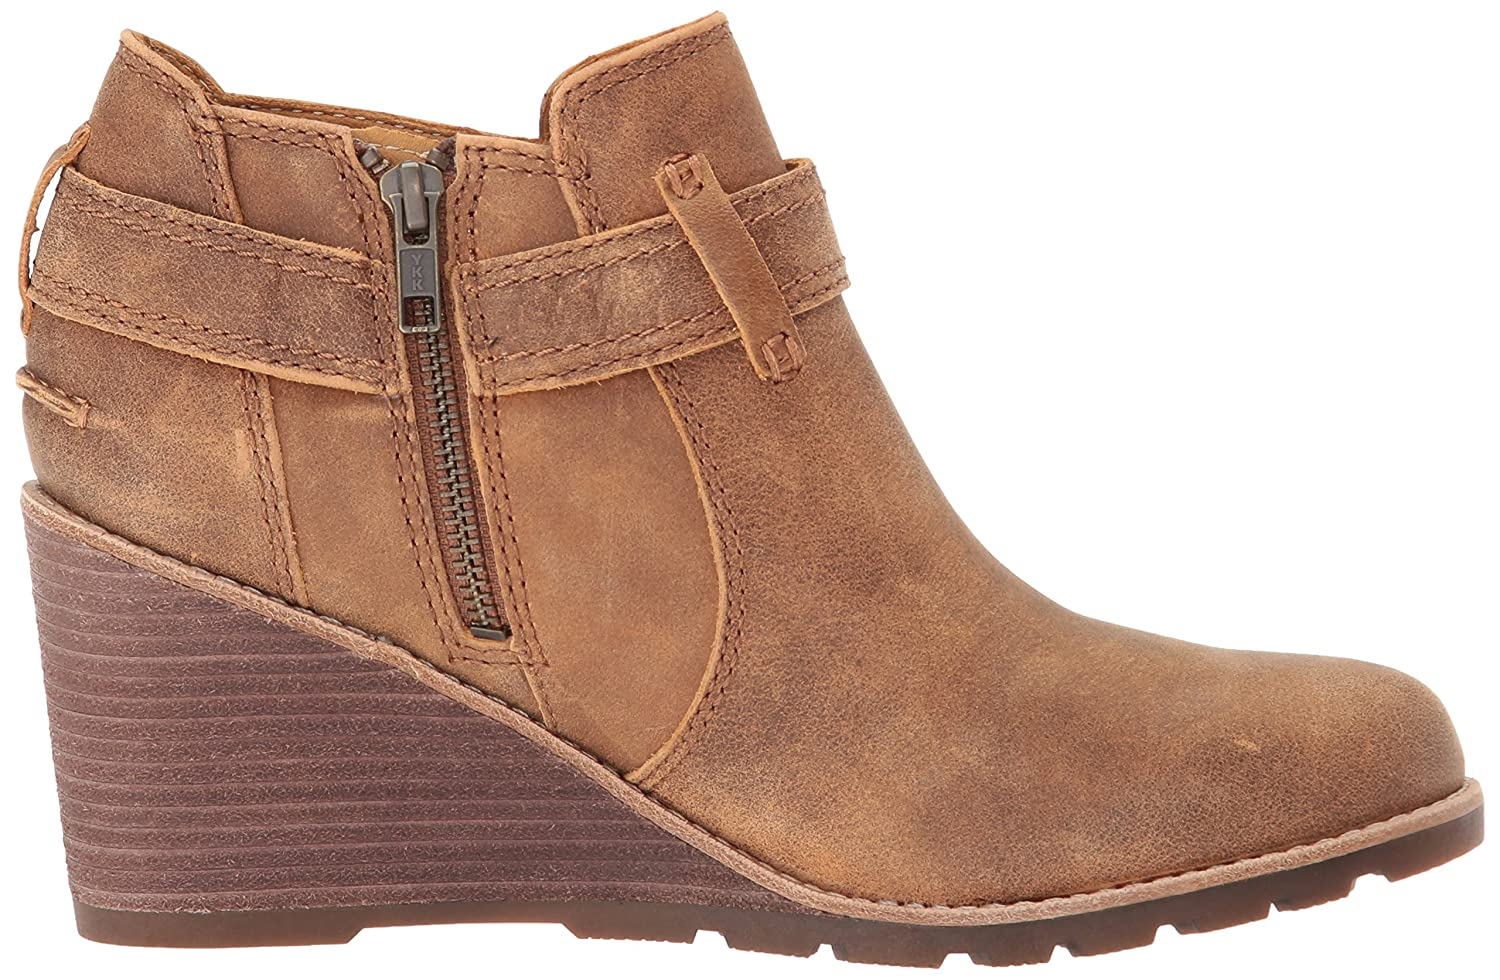 Sperry Top-Sider Women's Liberty B(M) Rosa Ankle Boot B01NCMB3H2 5 B(M) Liberty US|Brown c396c3